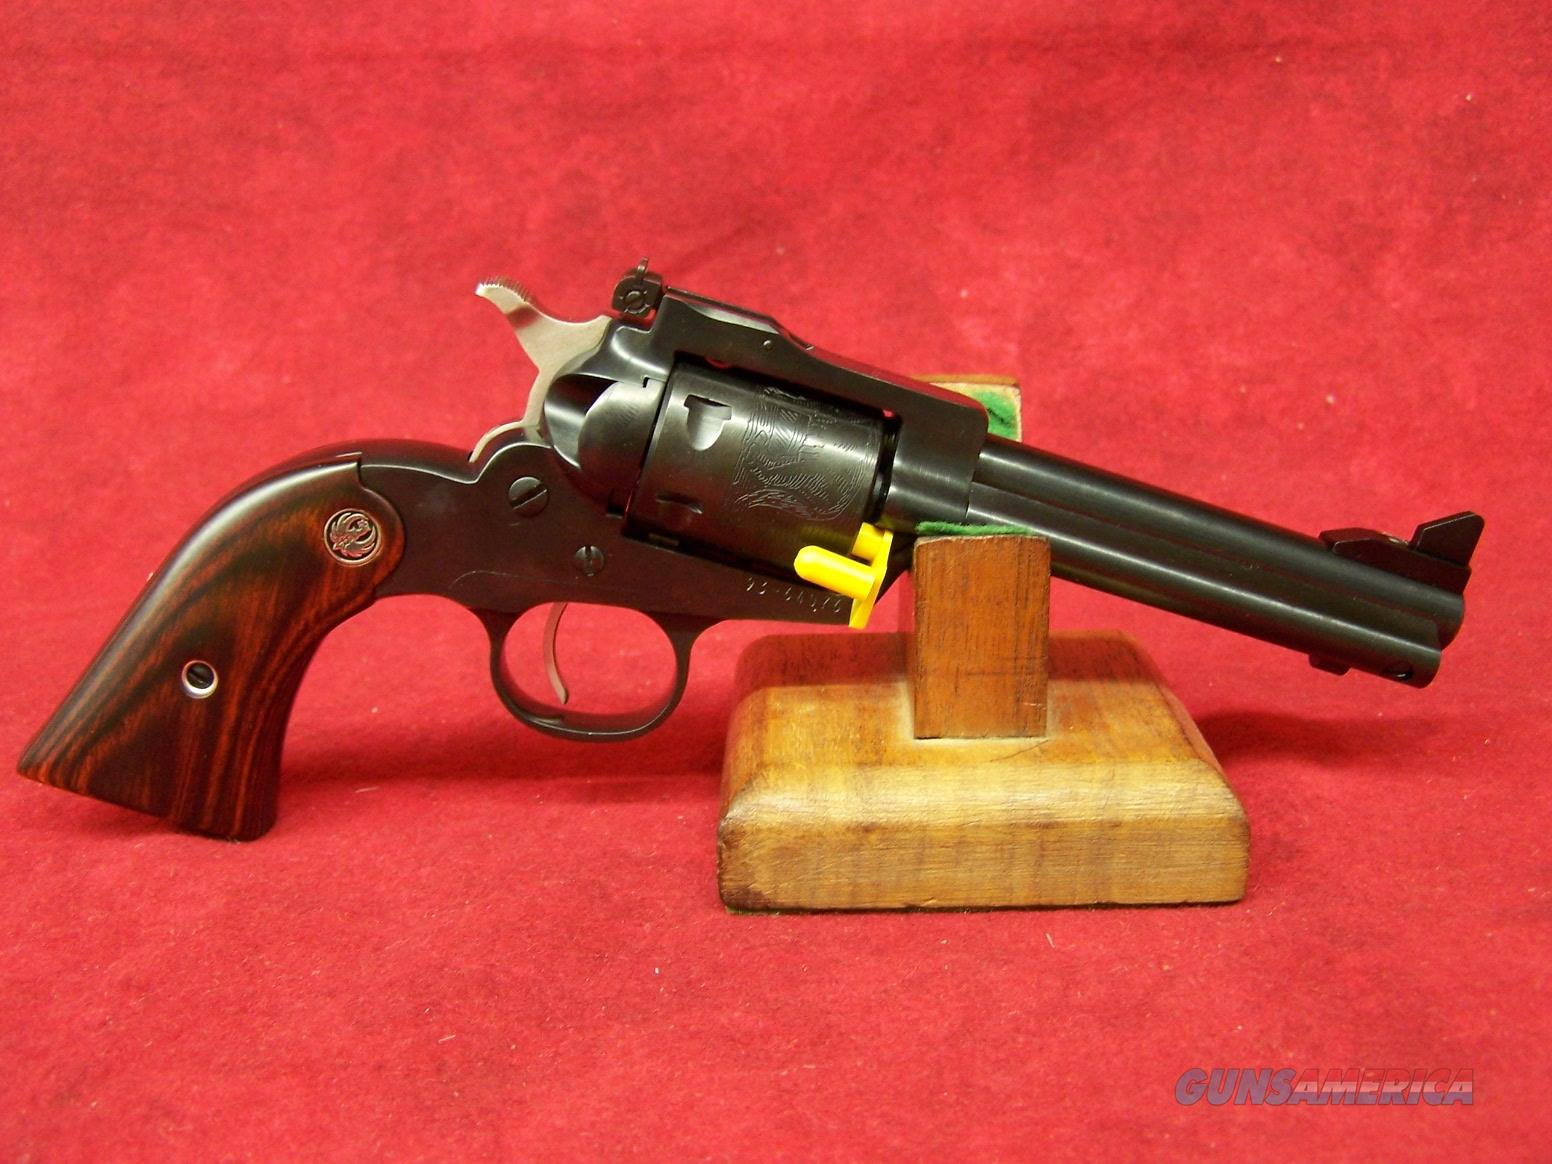 "RUGER BEARCAT 22LR BL/WD 4.2"" 6SH (00916)  Guns > Pistols > Ruger Single Action Revolvers > Bearcat"